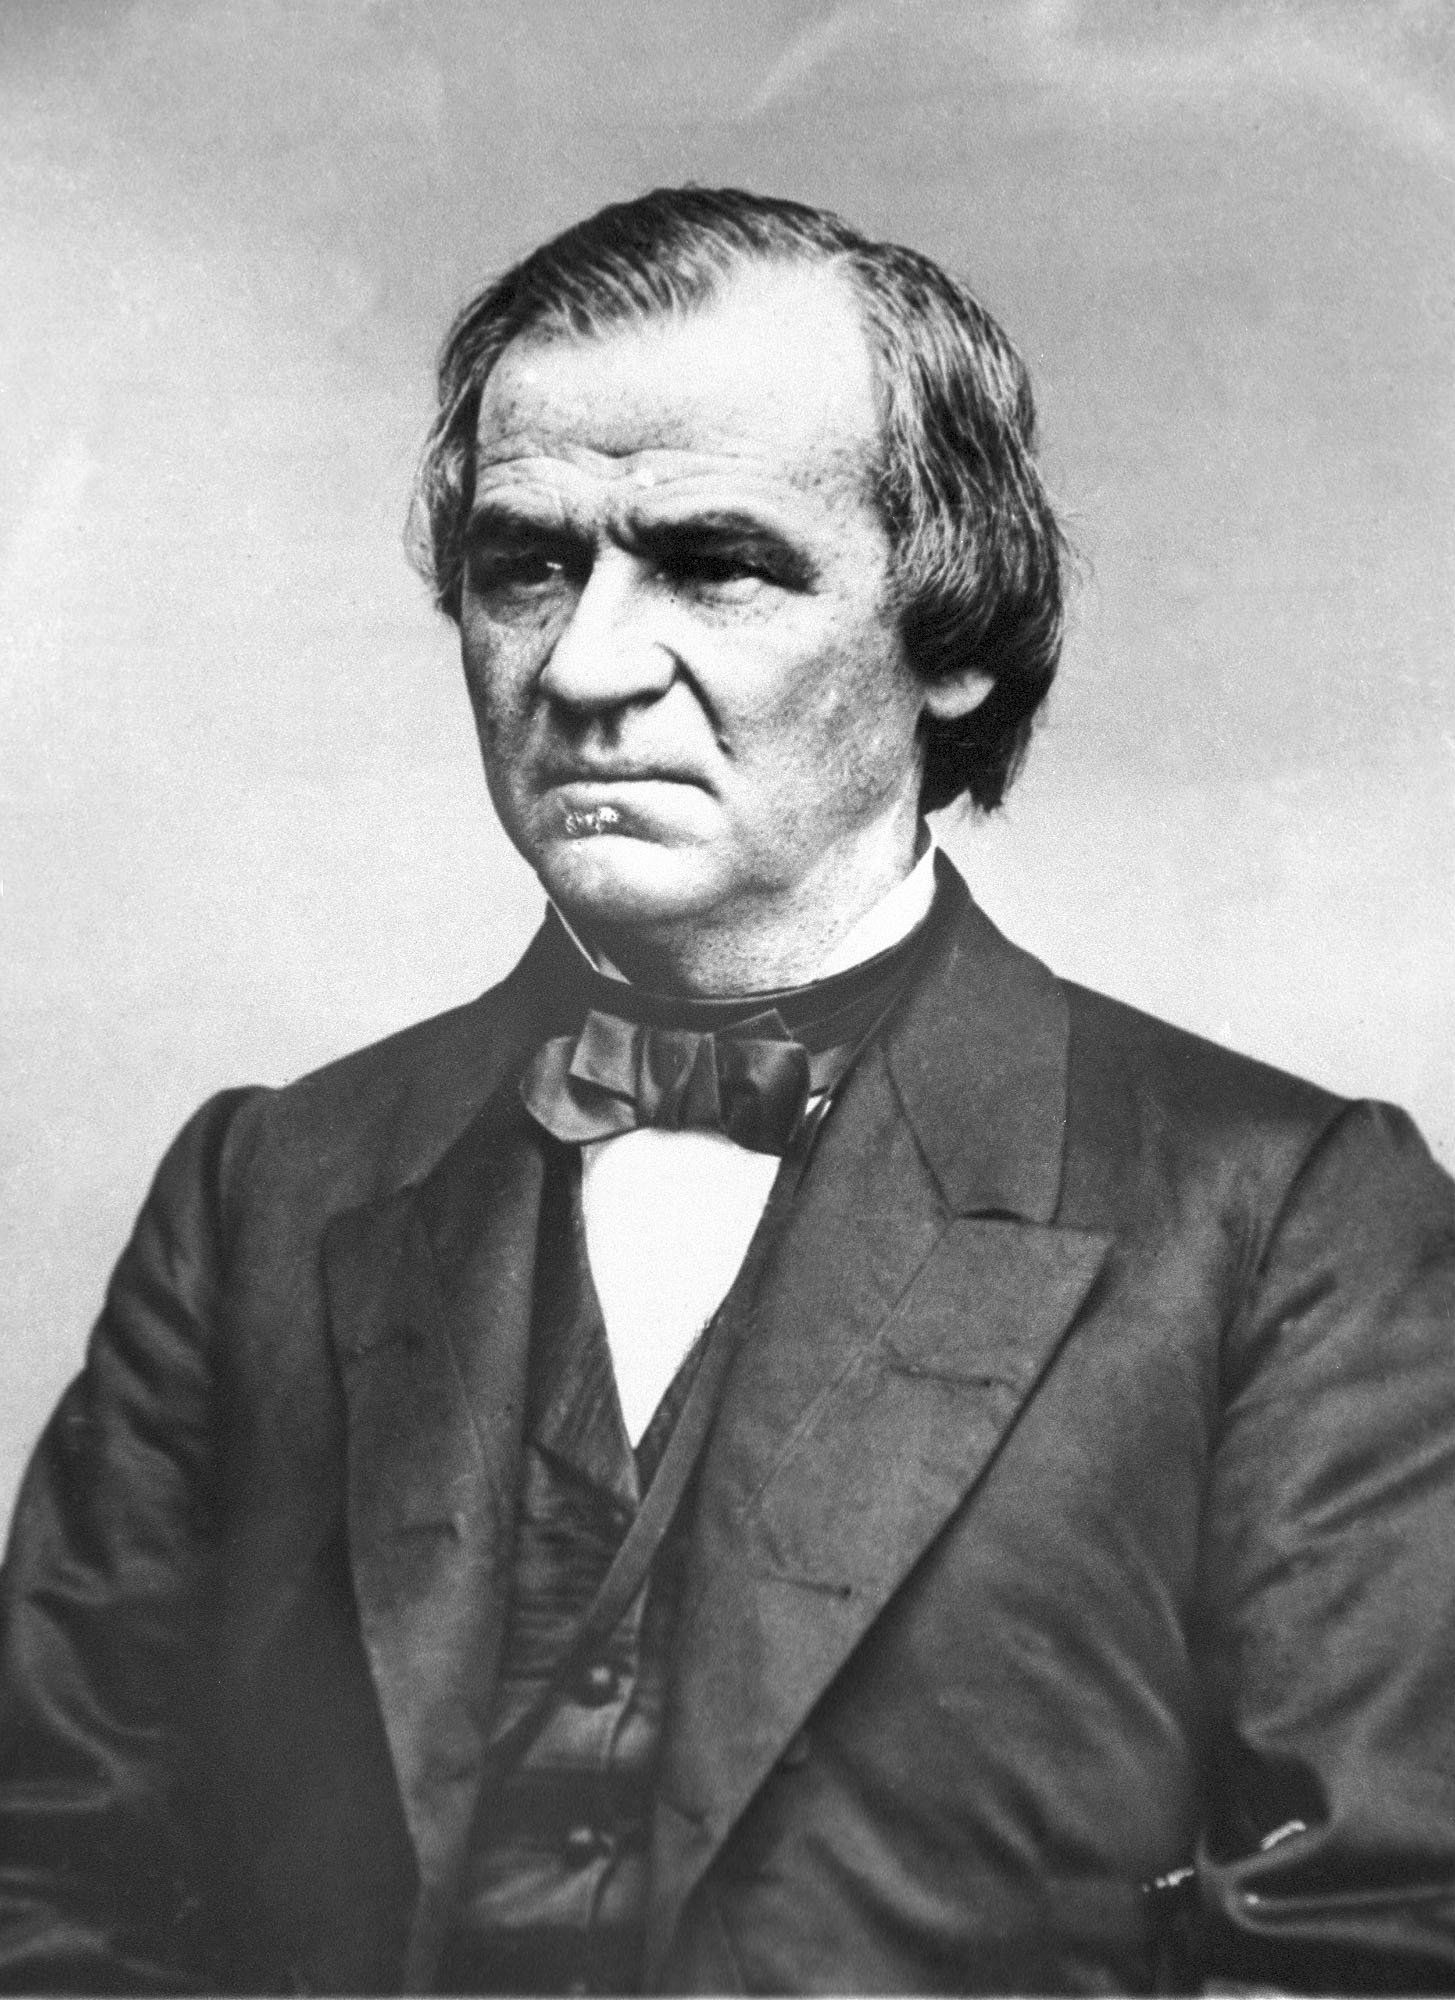 An engraving showing President Andrew Johnson IN 1868. The House approved 11 articles of impeachment against Andrew Johnson in 1868, arising essentially from political divisions over Reconstruction following the Civil War. After a 74-day Senate trial, the Senate acquitted Johnson on three of the articles by a one-vote margin each and decided not to vote on the remaining articles. (Library of Congress)